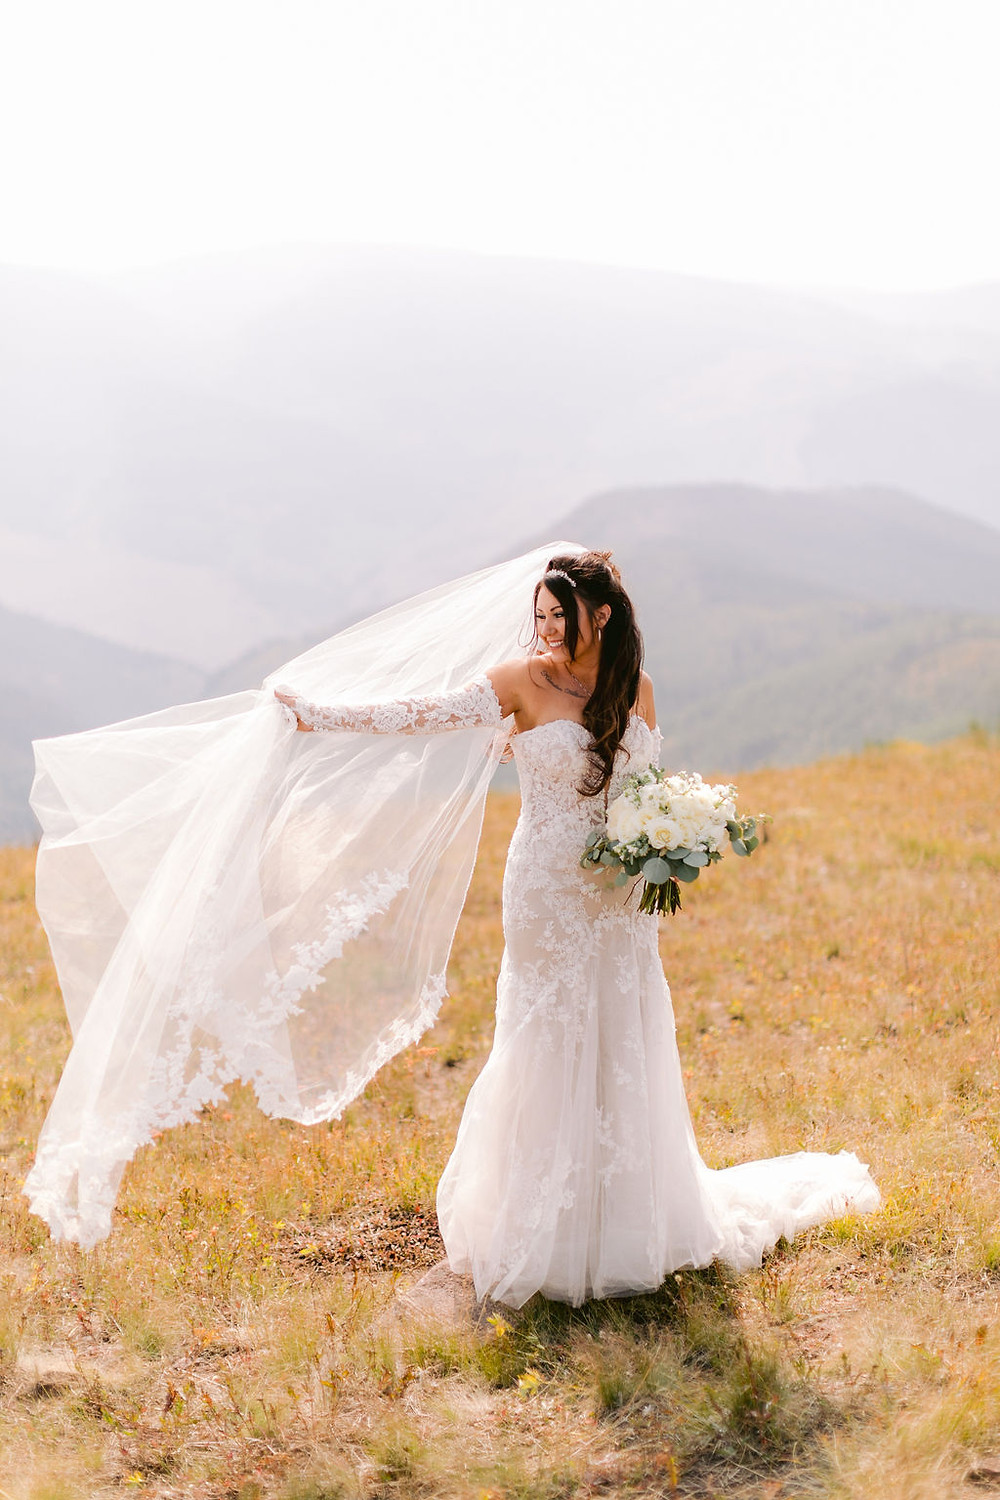 Vail Wedding at the Golf and Nordic Center. Vail Mountain top wedding pictures. Destination micro wedding. Gold and green and white wedding.